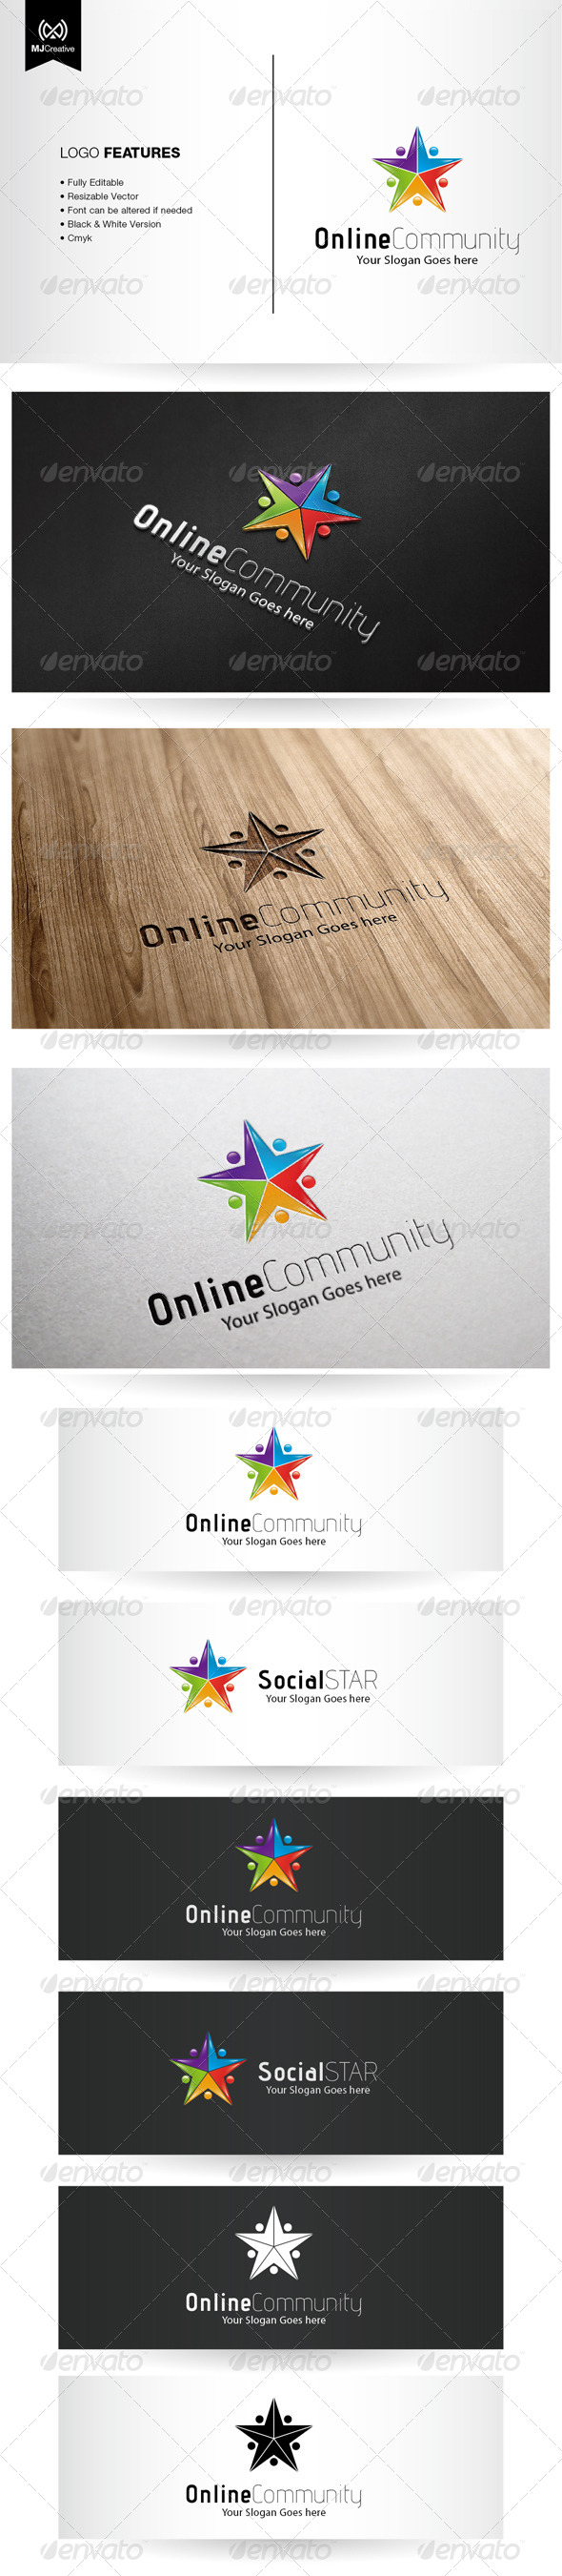 Colorful Star and Social Network Logo